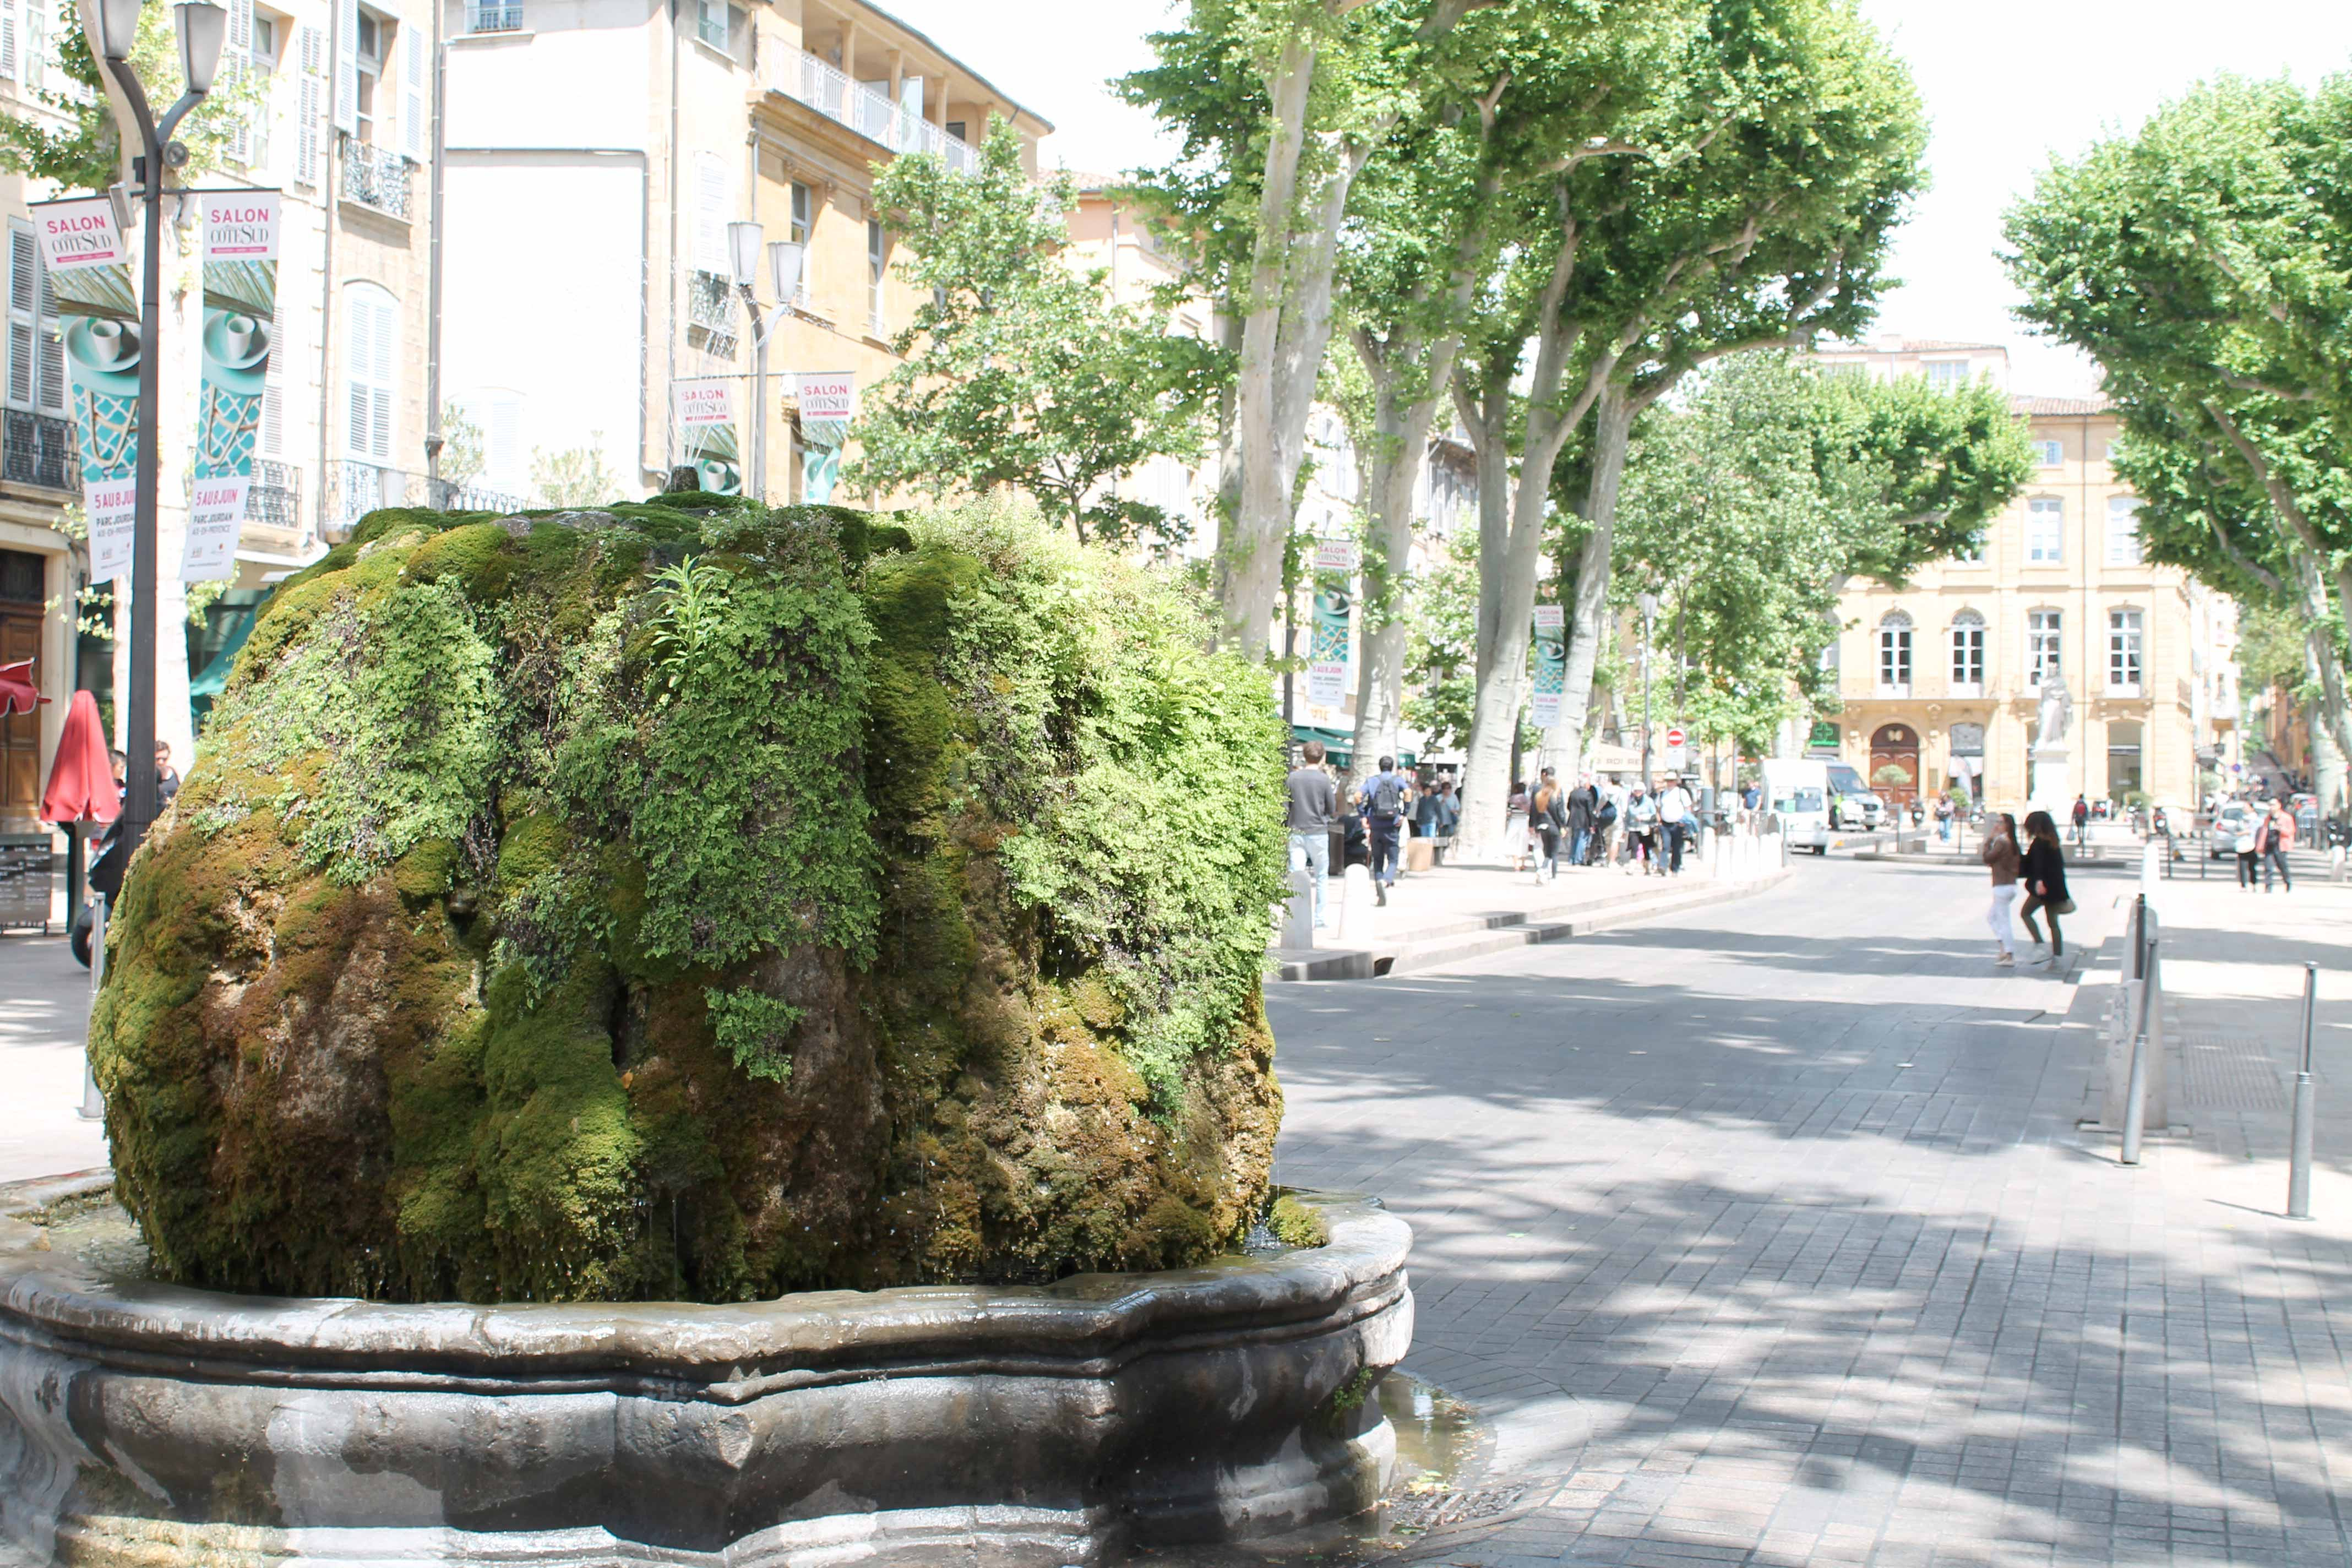 Shore excursion, fontaine moussue, Aix en Provence